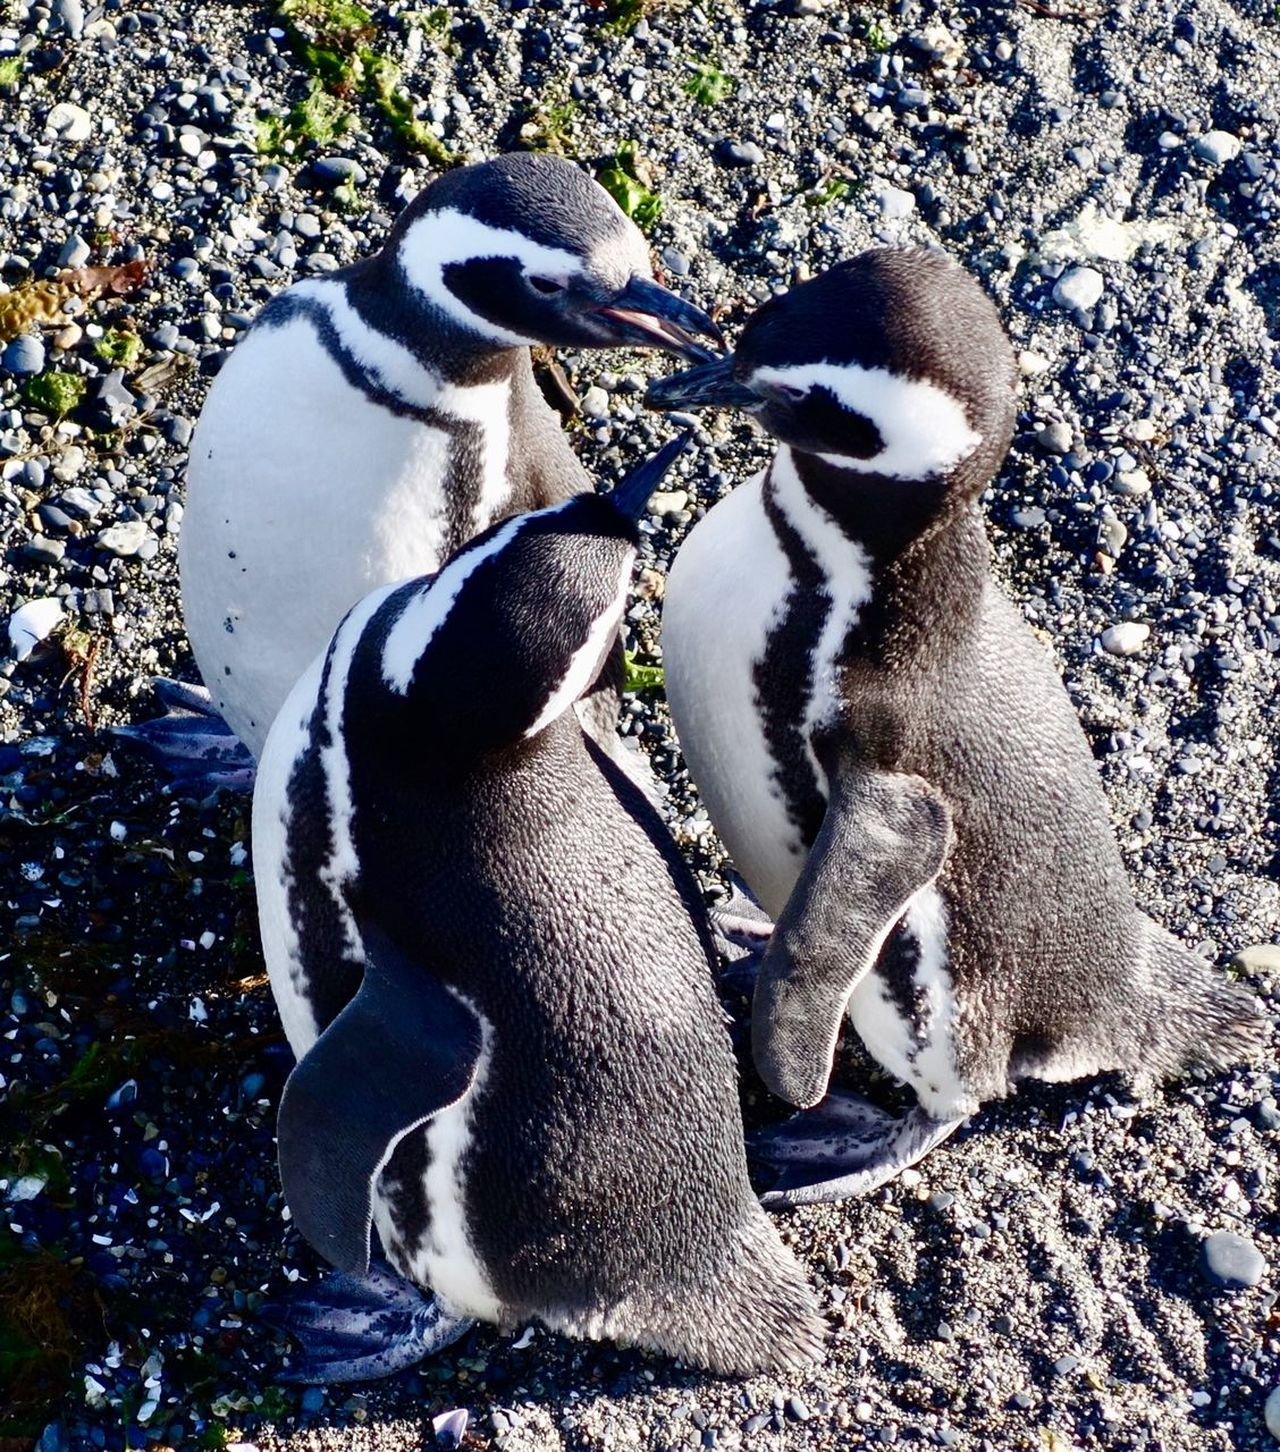 Closeness Friendship Togetherness Isla Martillo Tierra Del Fuego Chatting With Friends Magallanic Penguin Penguins Three Animals Animal Themes Penguin Animals In The Wild Togetherness Young Bird Animal Wildlife No People Outdoors Bird Young Animal Day Nature Mammal